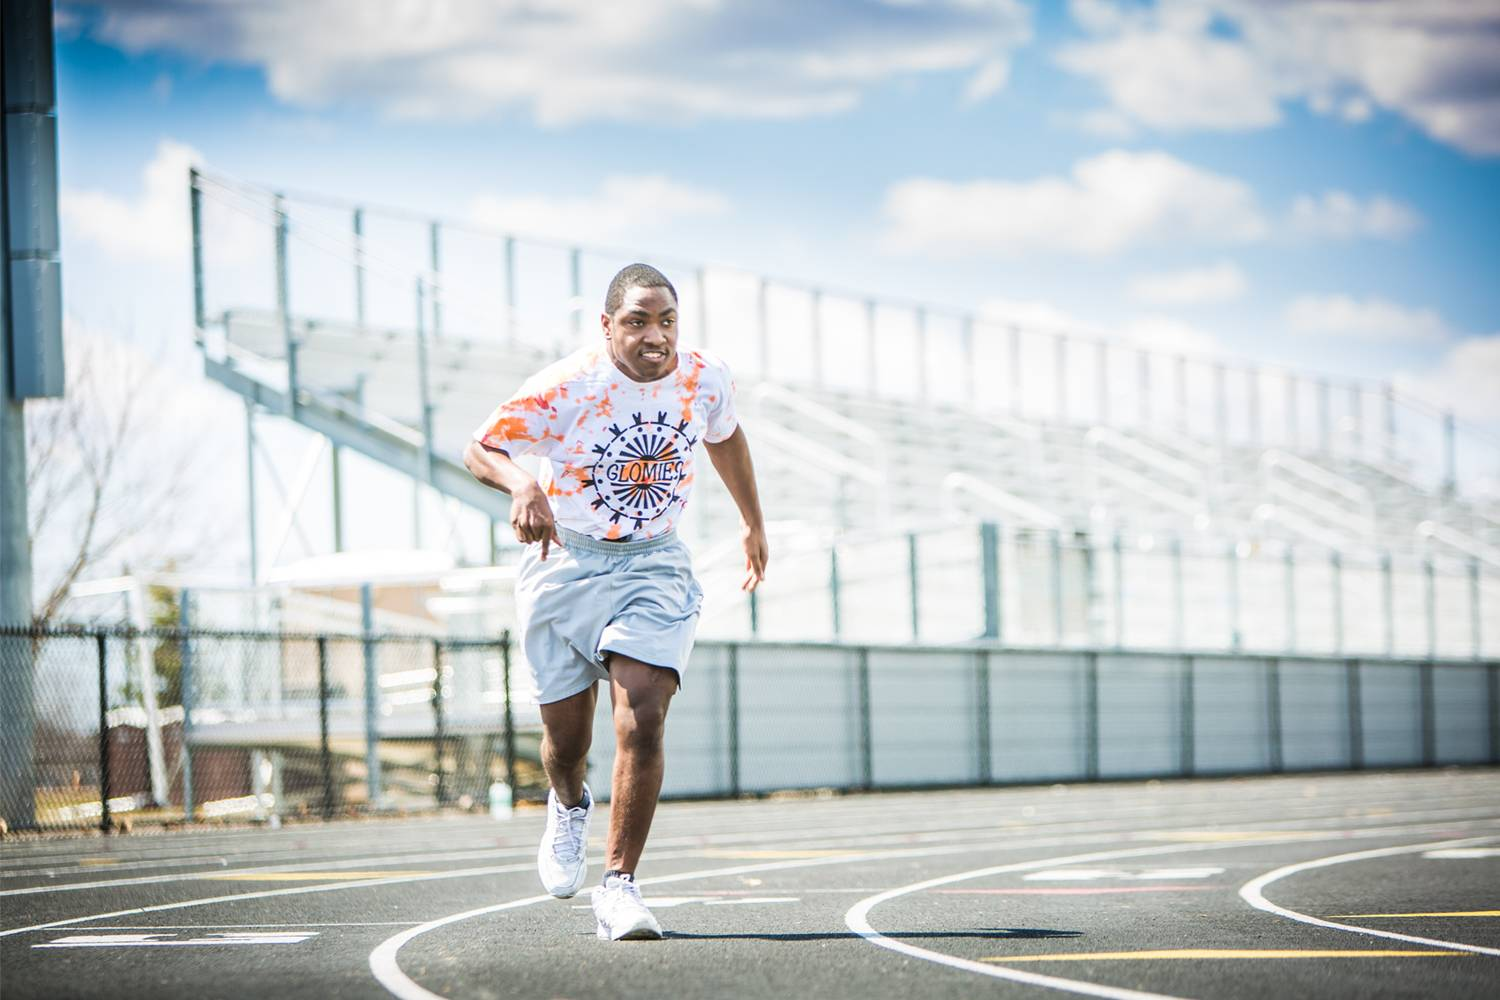 Jacob, who has cerebral palsy, has always wanted to run track.